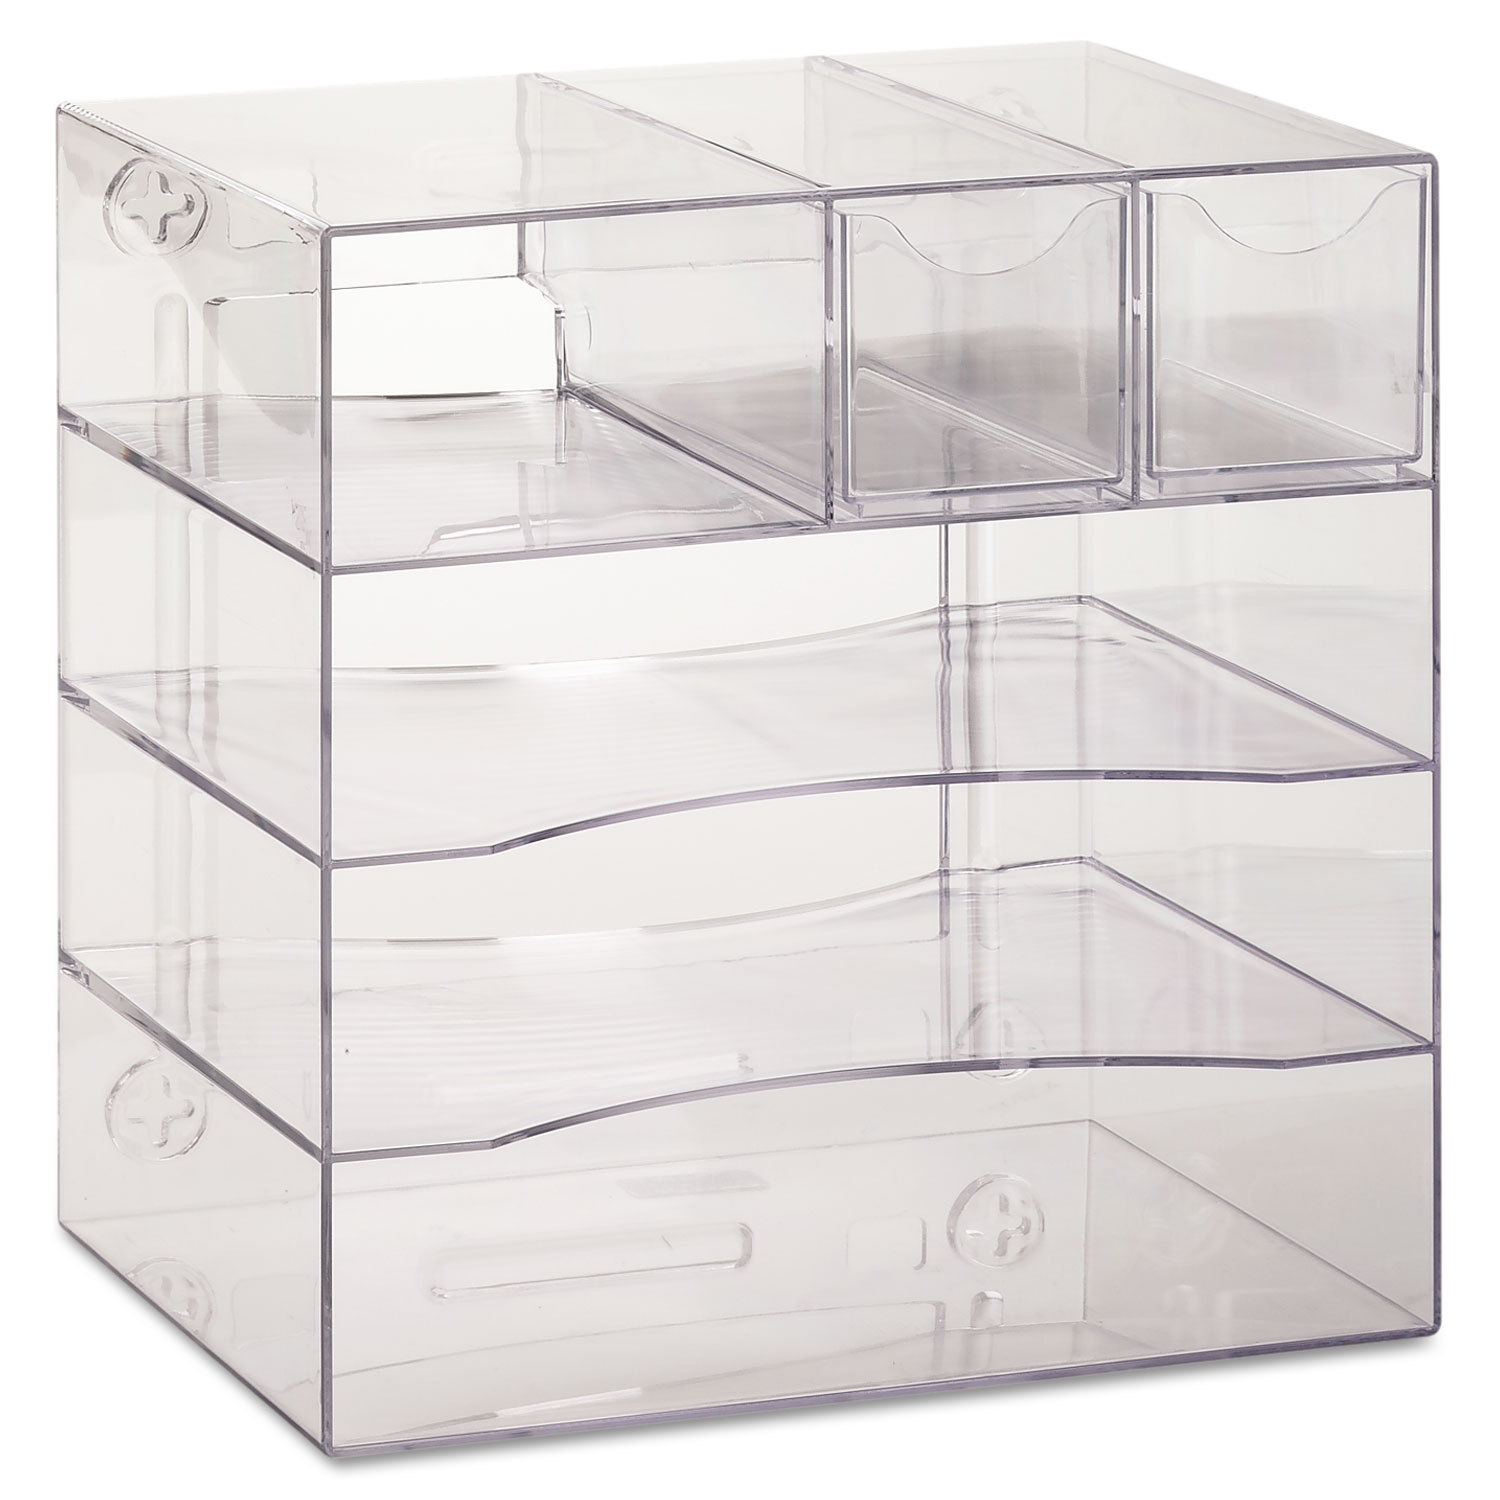 plastic black clear sterilite drawers within of image drawer ideas home cabinet storage the redesign walmart